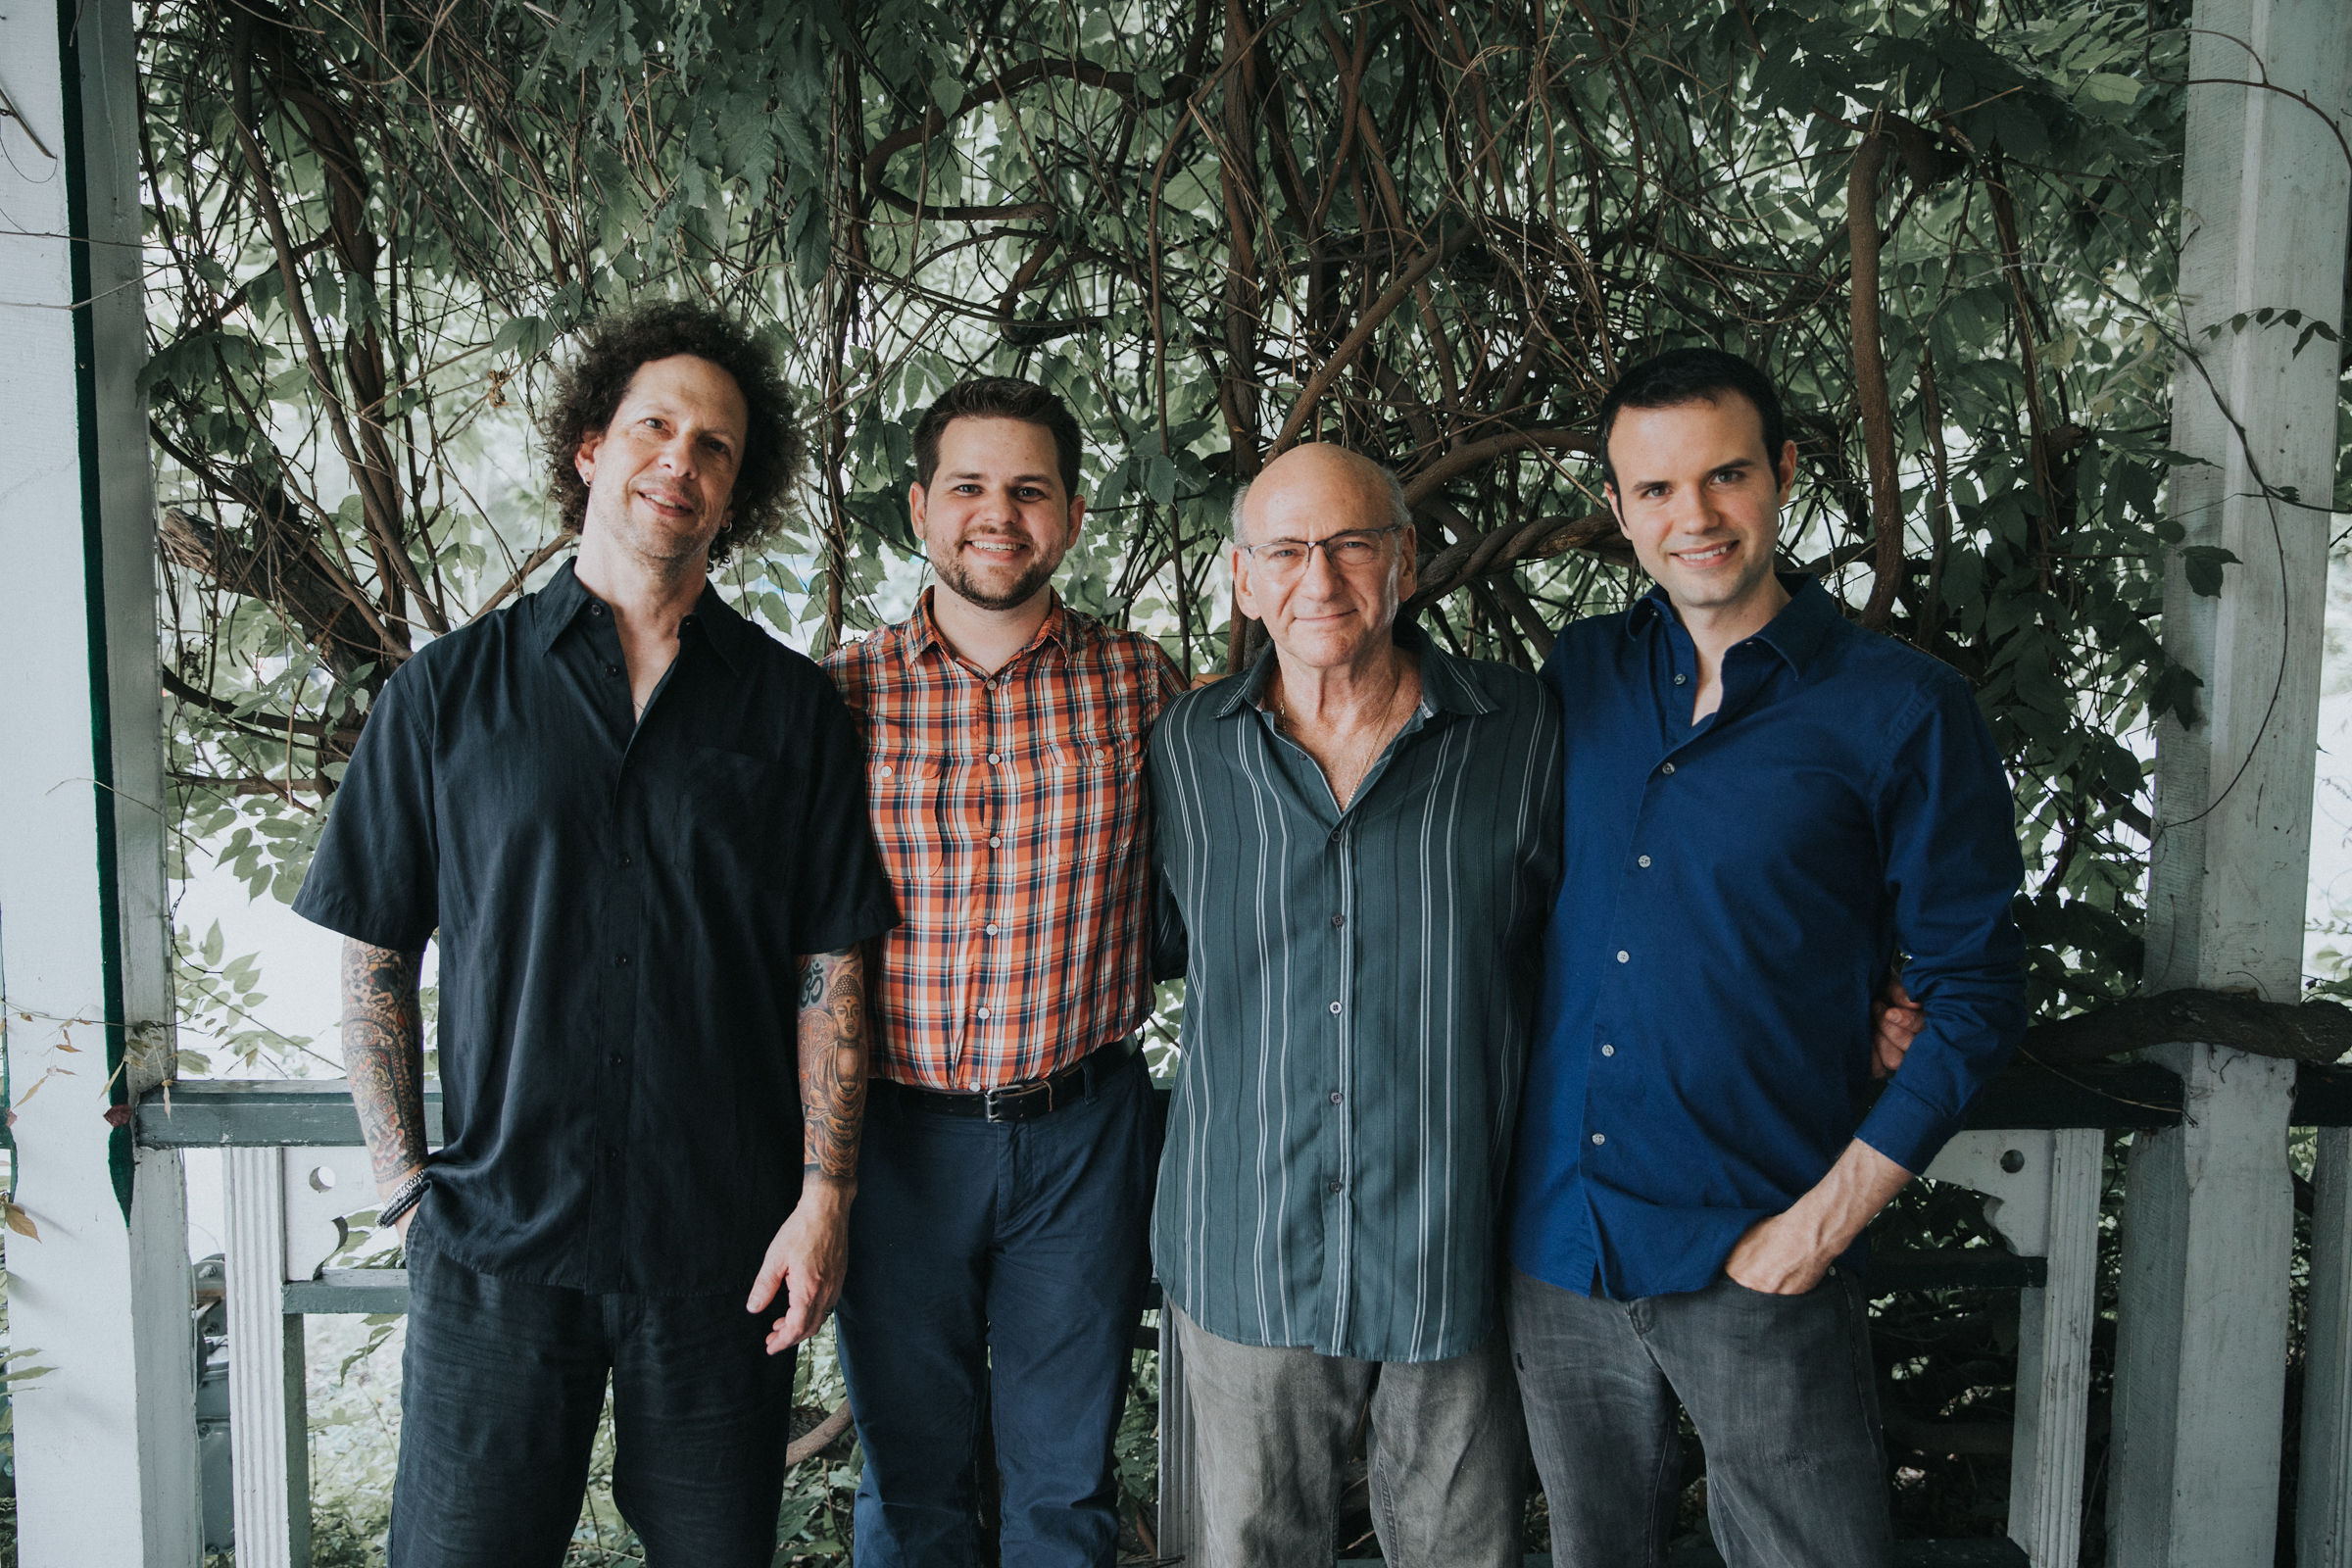 """REVIEW: Renowned Saxophonist Dave Liebman Vibrantly Leads The Generations Quartet With Their Debut Via """"Invitation"""" – Glide Magazine"""